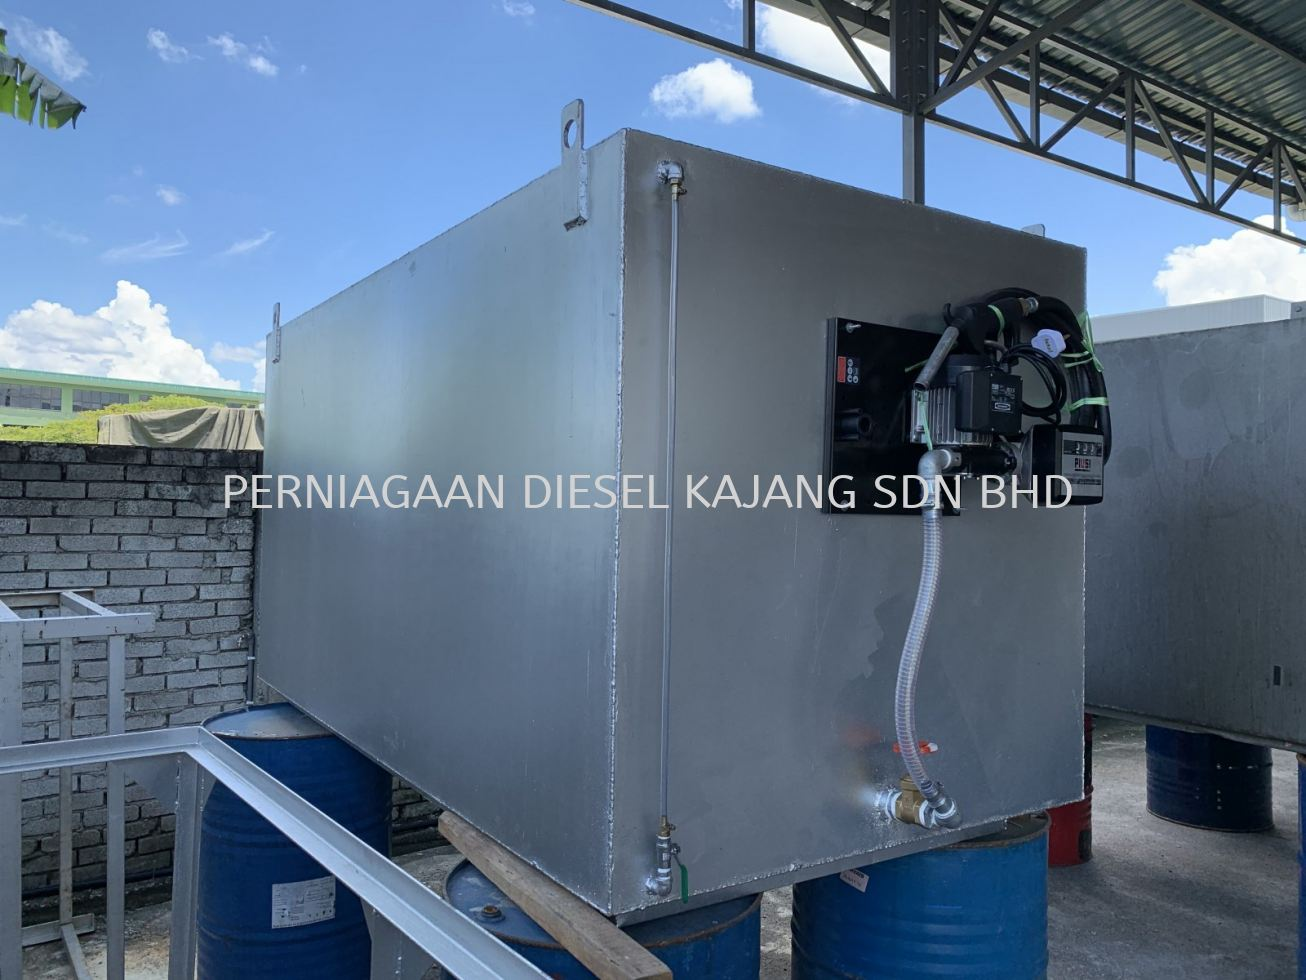 MALAYSIA DIESEL PRICE